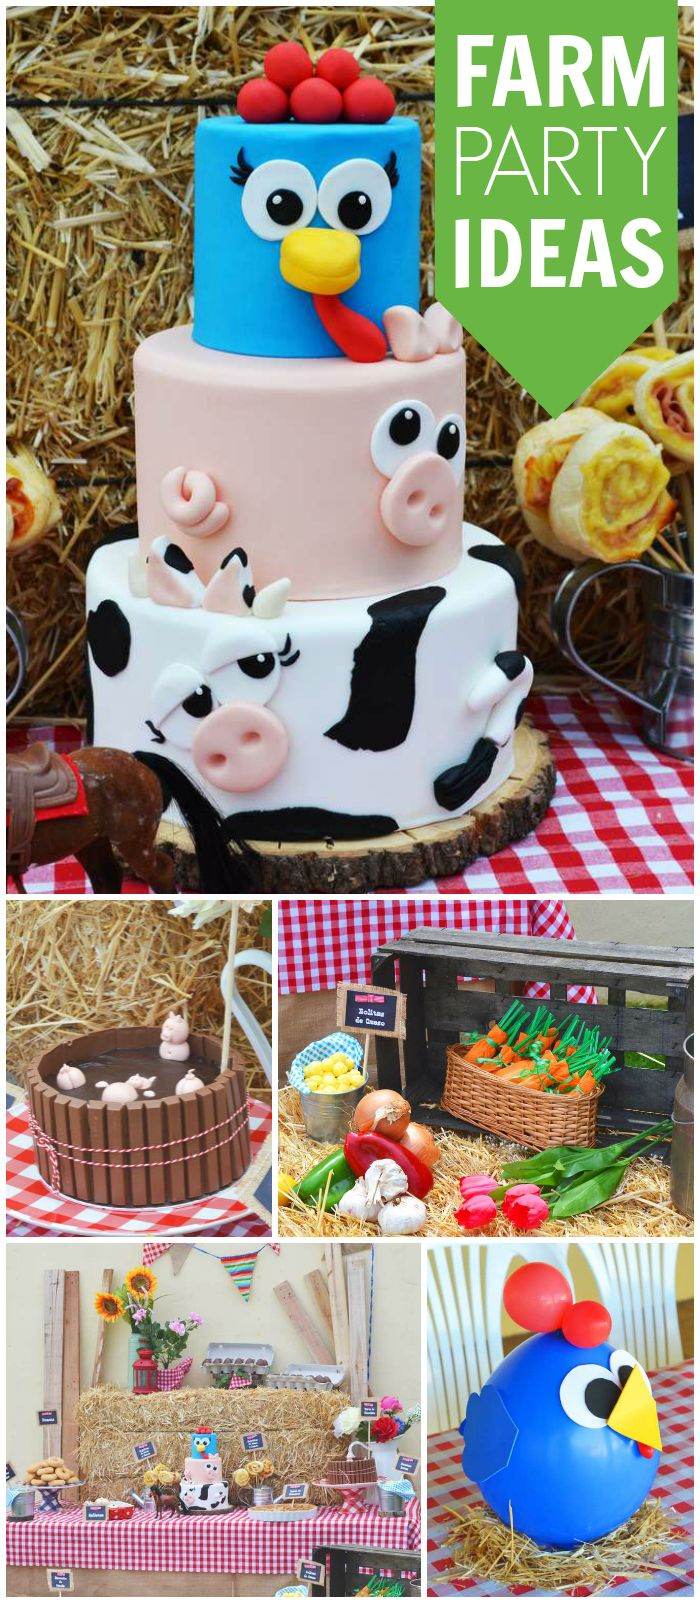 birthday activities for toddlers ; 7500b7c49e0c1a26aee73d80d9a03b1b--rd-birthday-farm-birthday-party-cakes